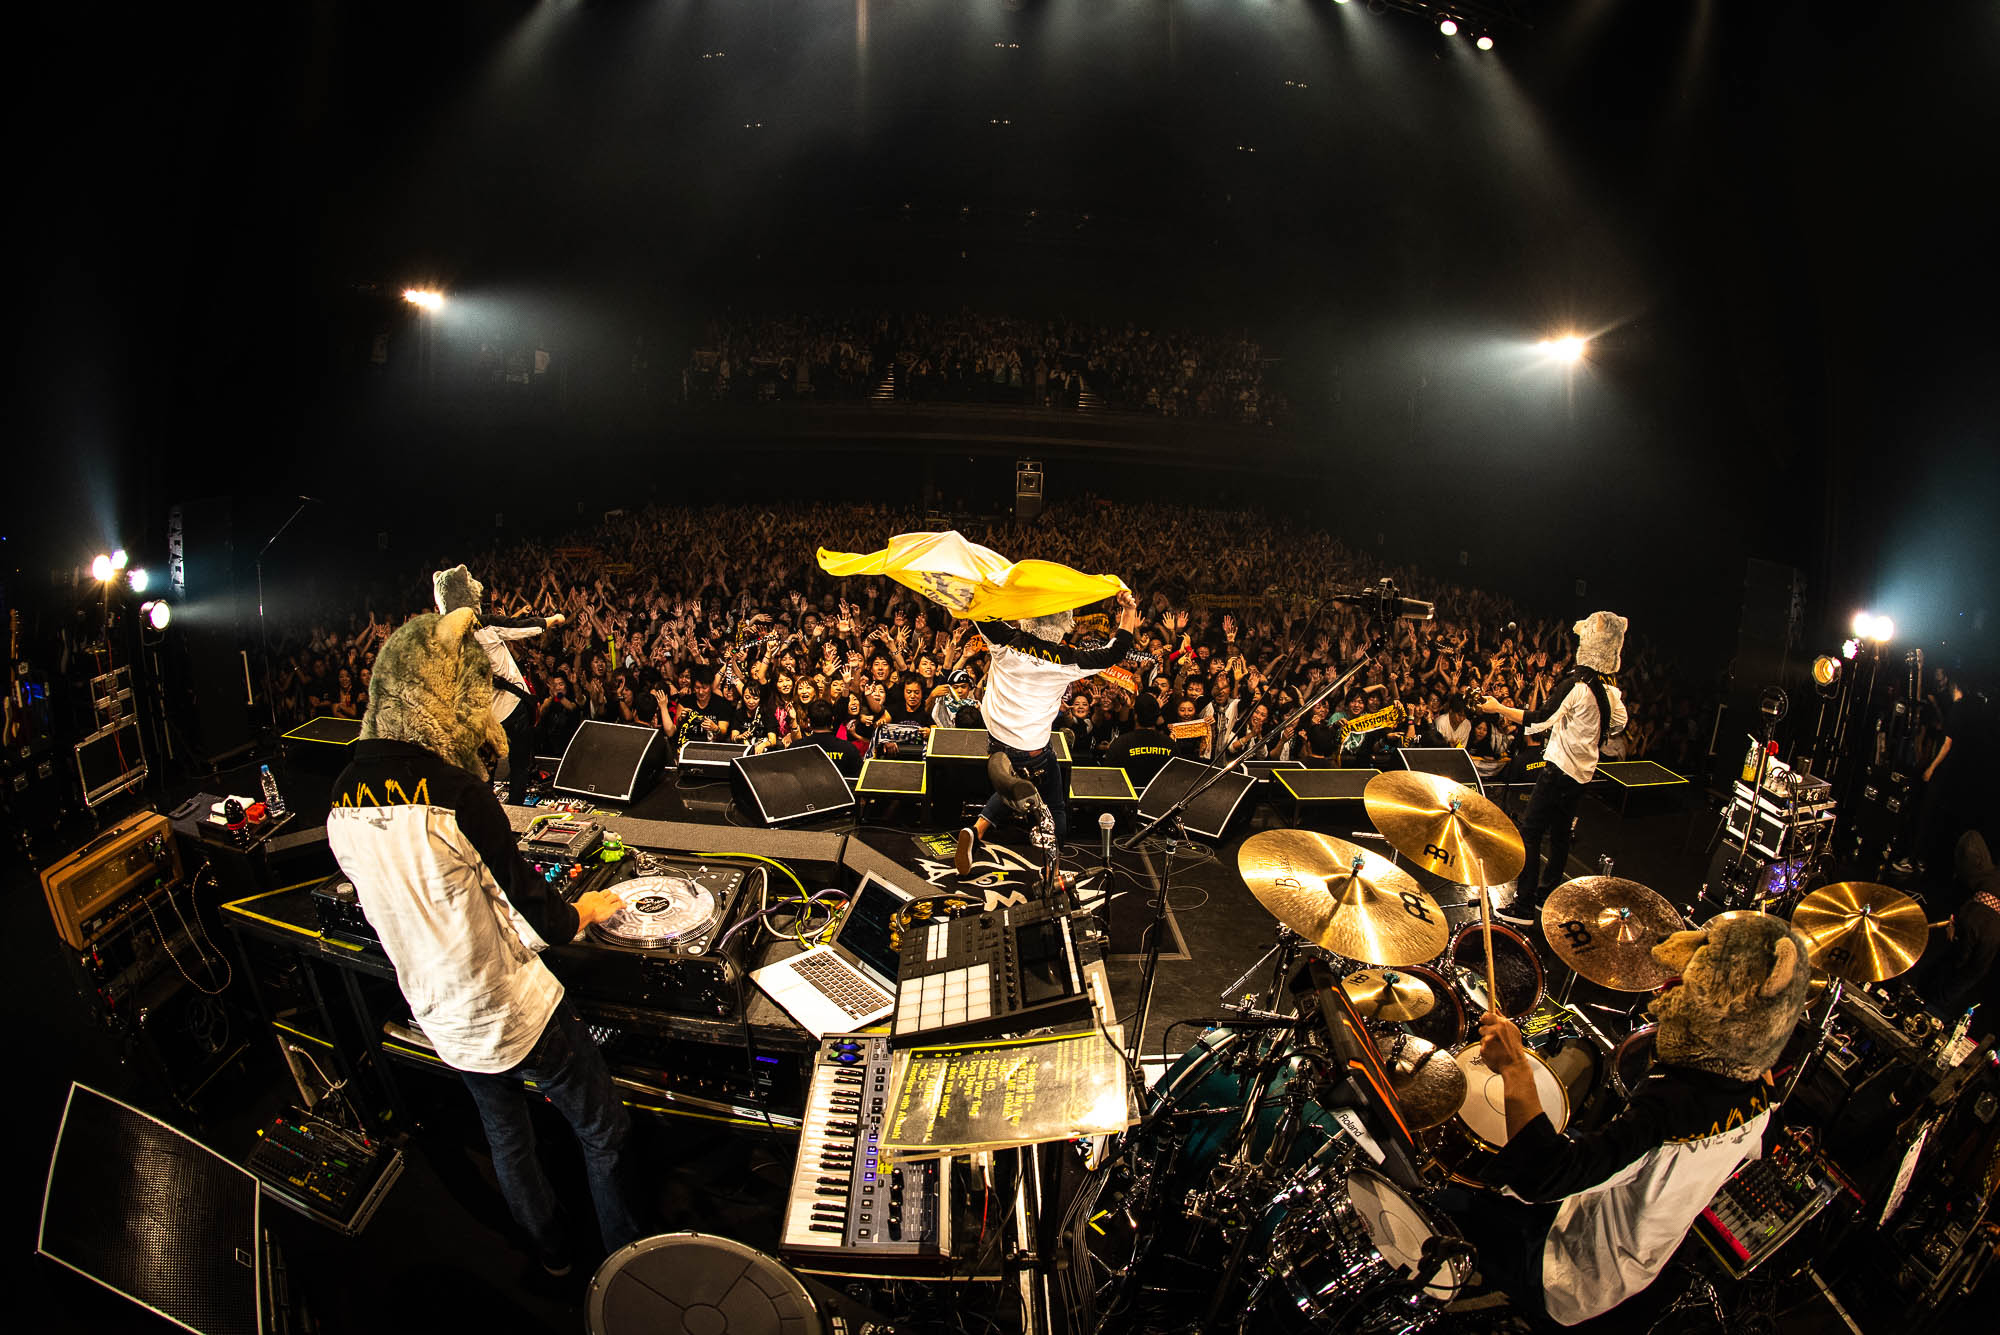 MAN WITH A MISSION@Dragon Ash LIVE TOUR 「UNITED FRONT」photo by Daisuke Sakai